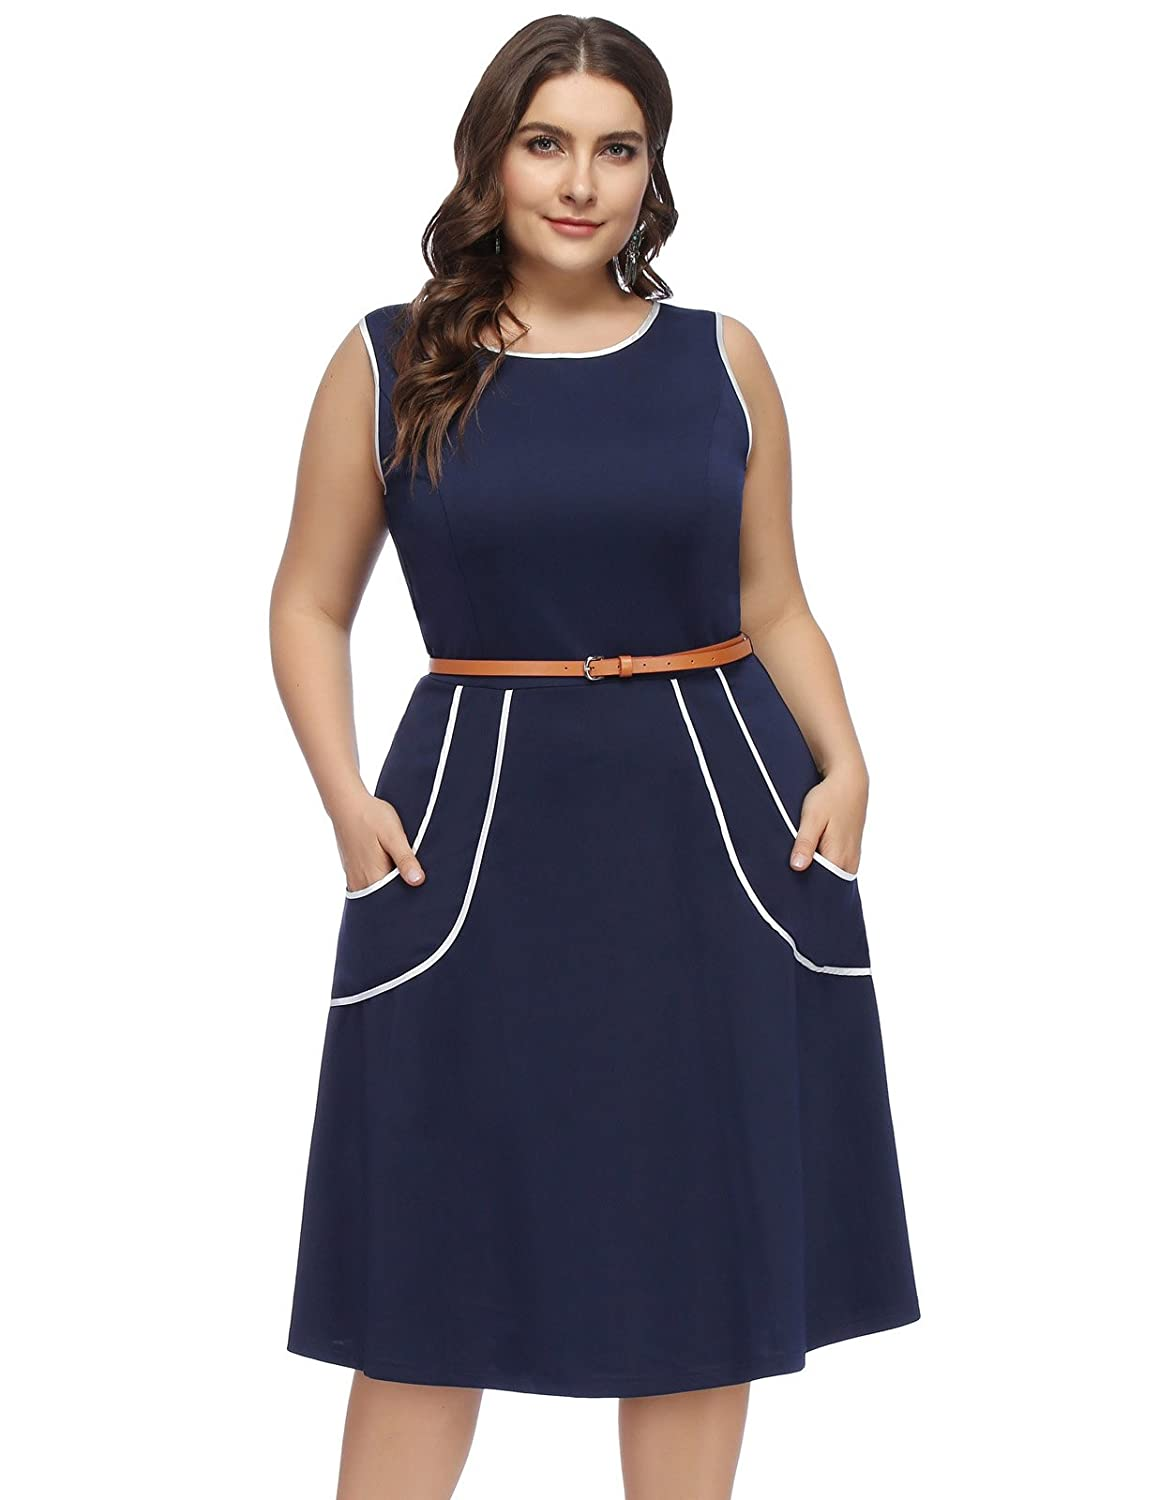 500 Vintage Style Dresses for Sale | Vintage Inspired Dresses Hanna Nikole Women Plus Size Sleeveless Pockets A-Line Midi Dress with Belt $29.99 AT vintagedancer.com